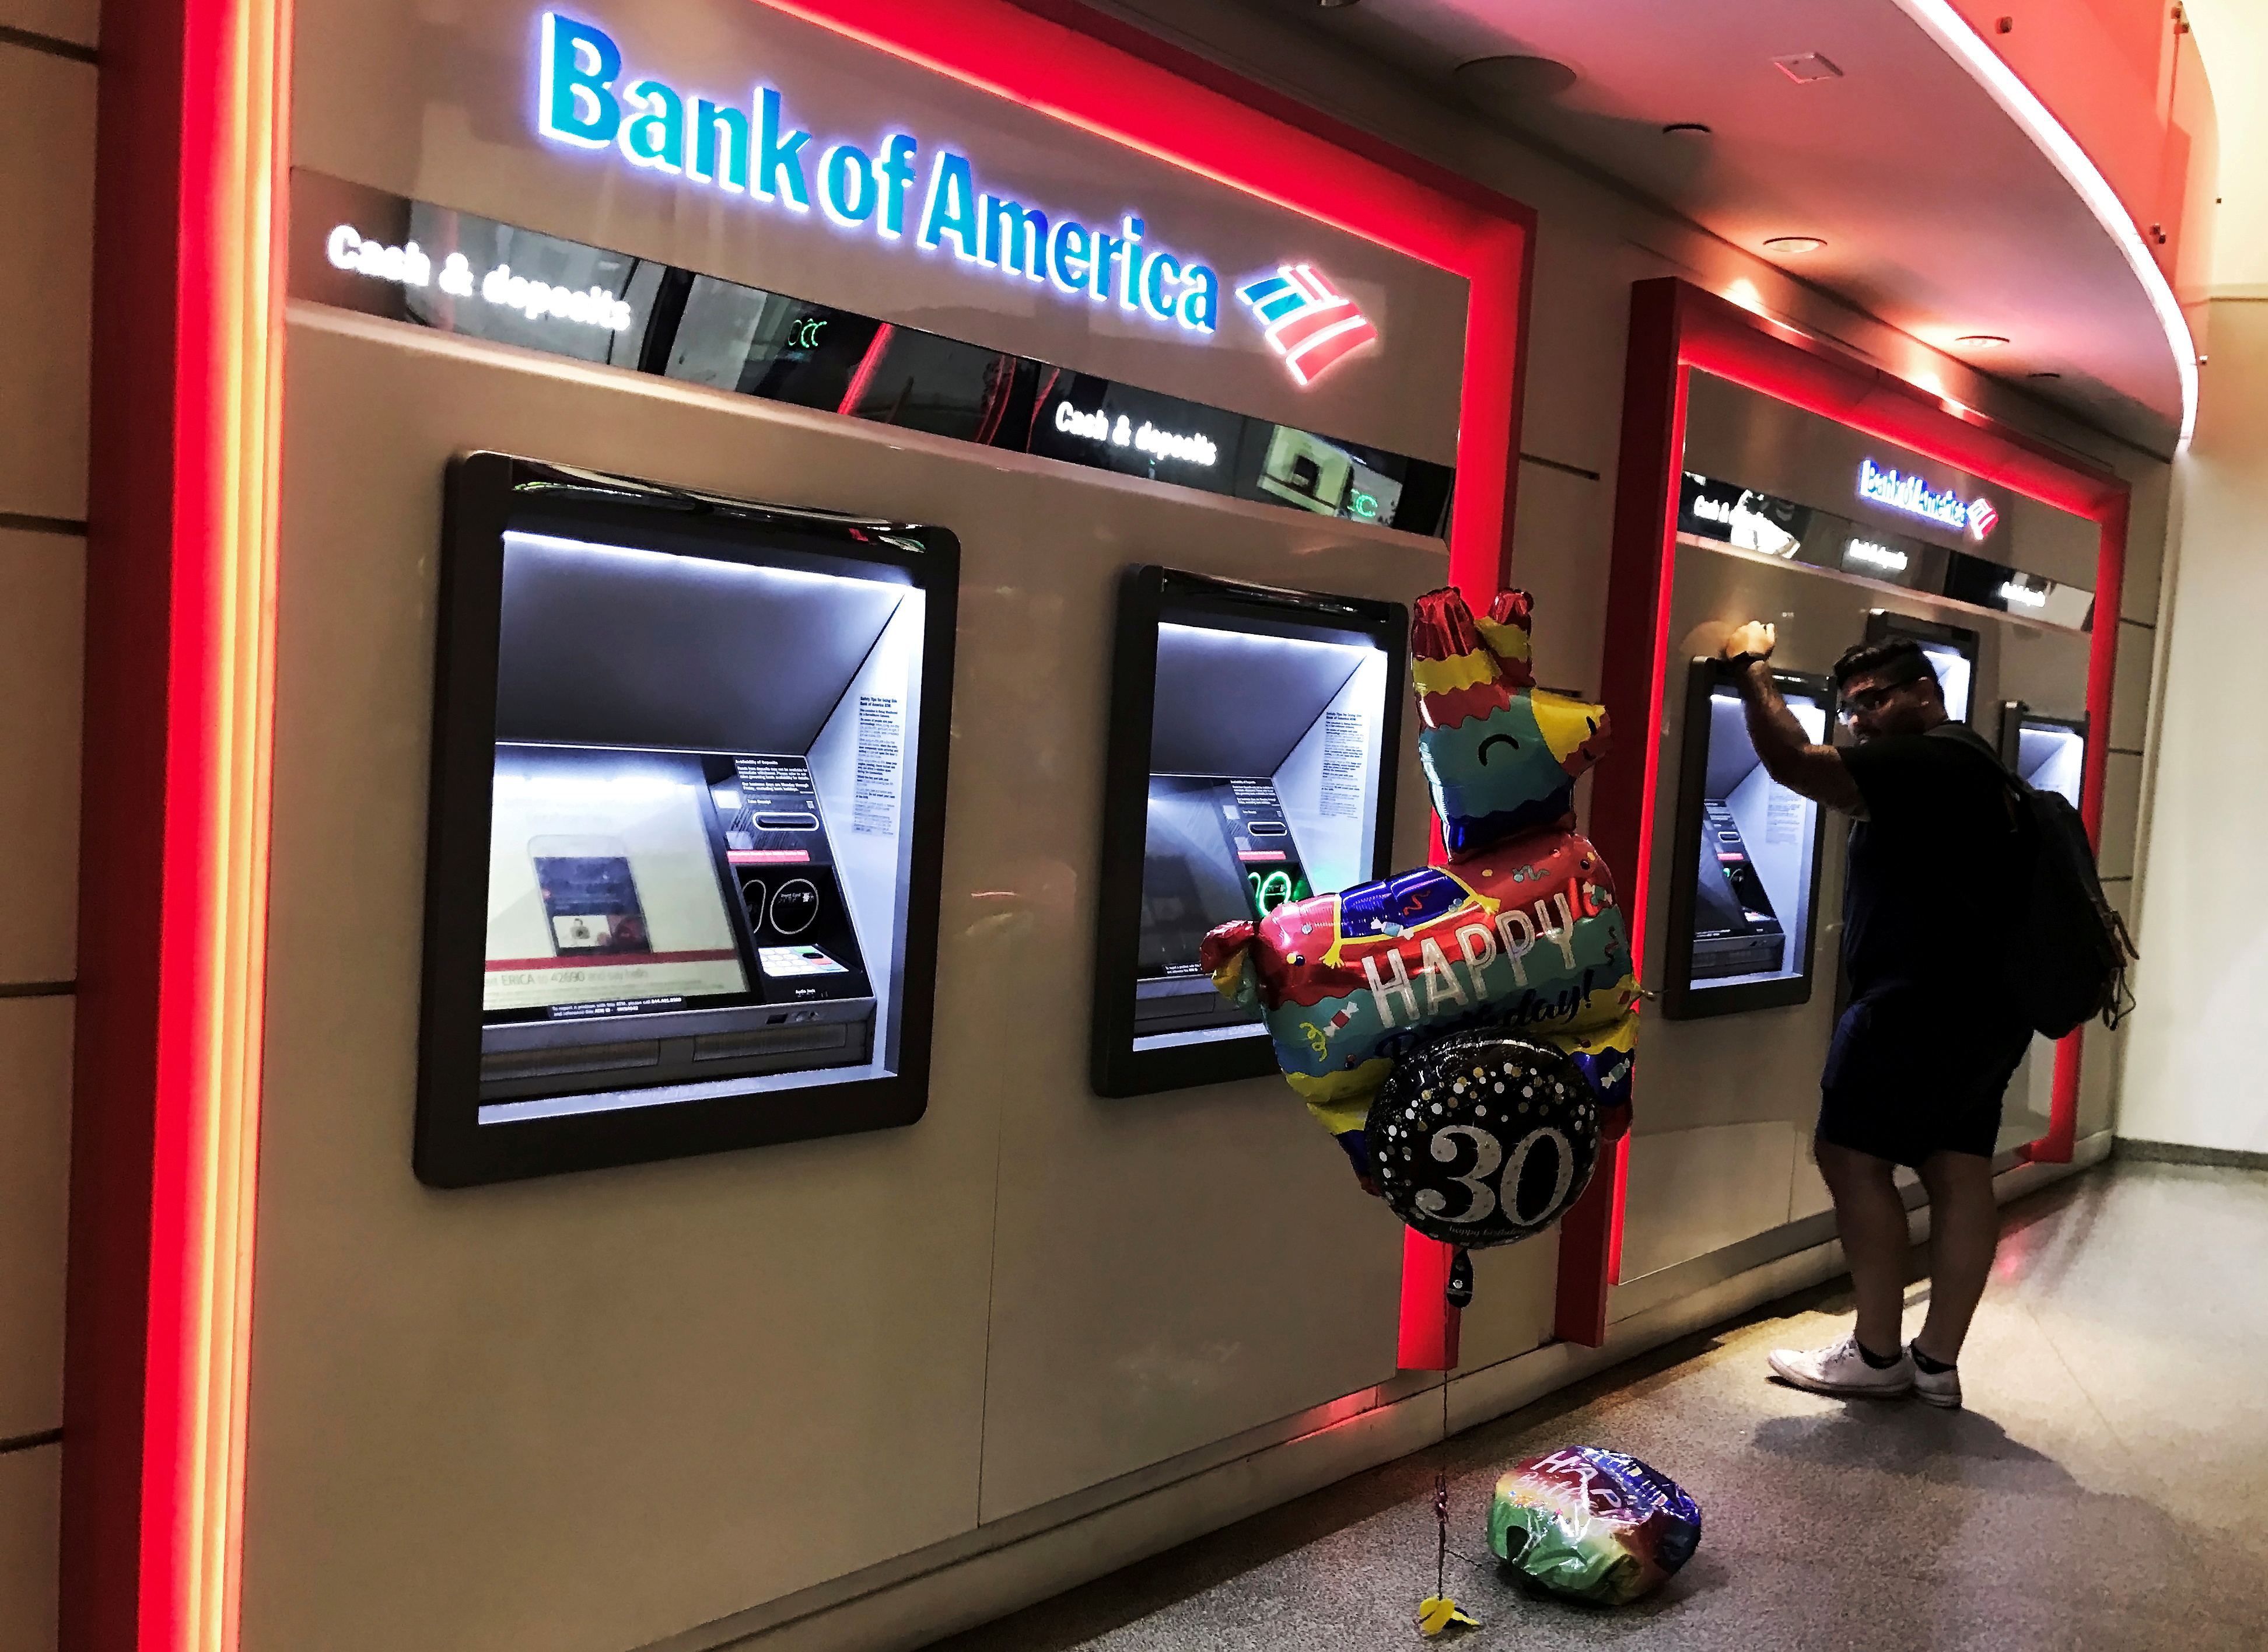 A man uses an ATM machine inside a Bank of America branch in Times Square in New York, U.S., August 10, 2019. REUTERS/Nacho Doce